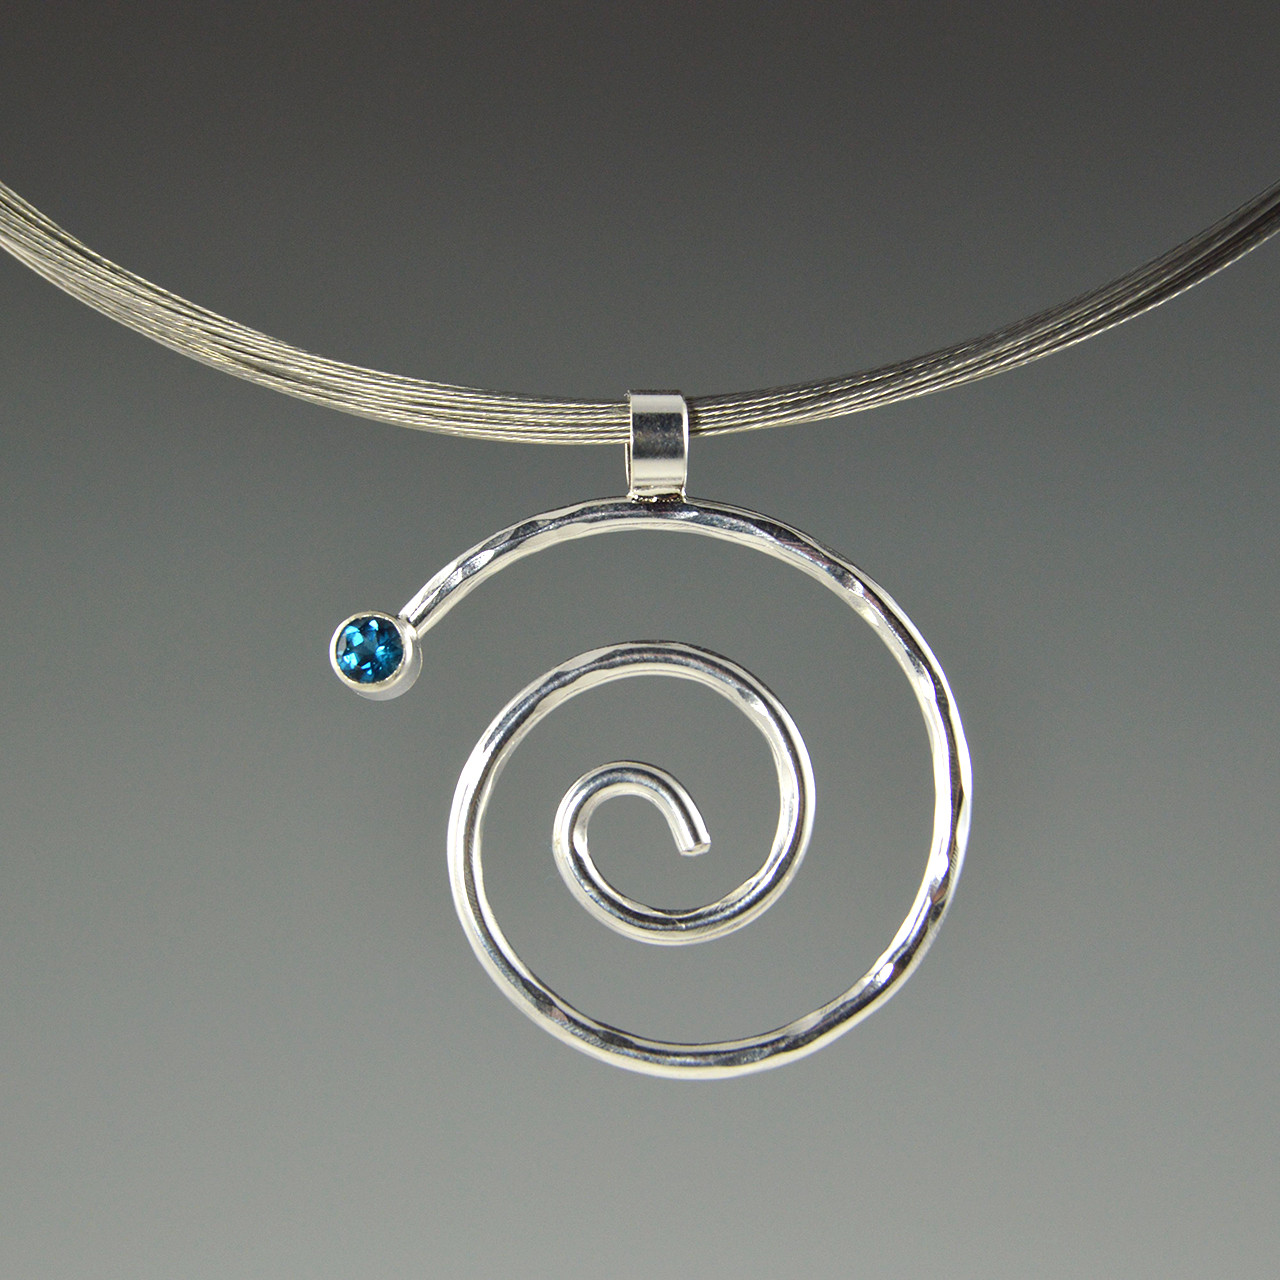 Spiral Pendant with Blue Topaz